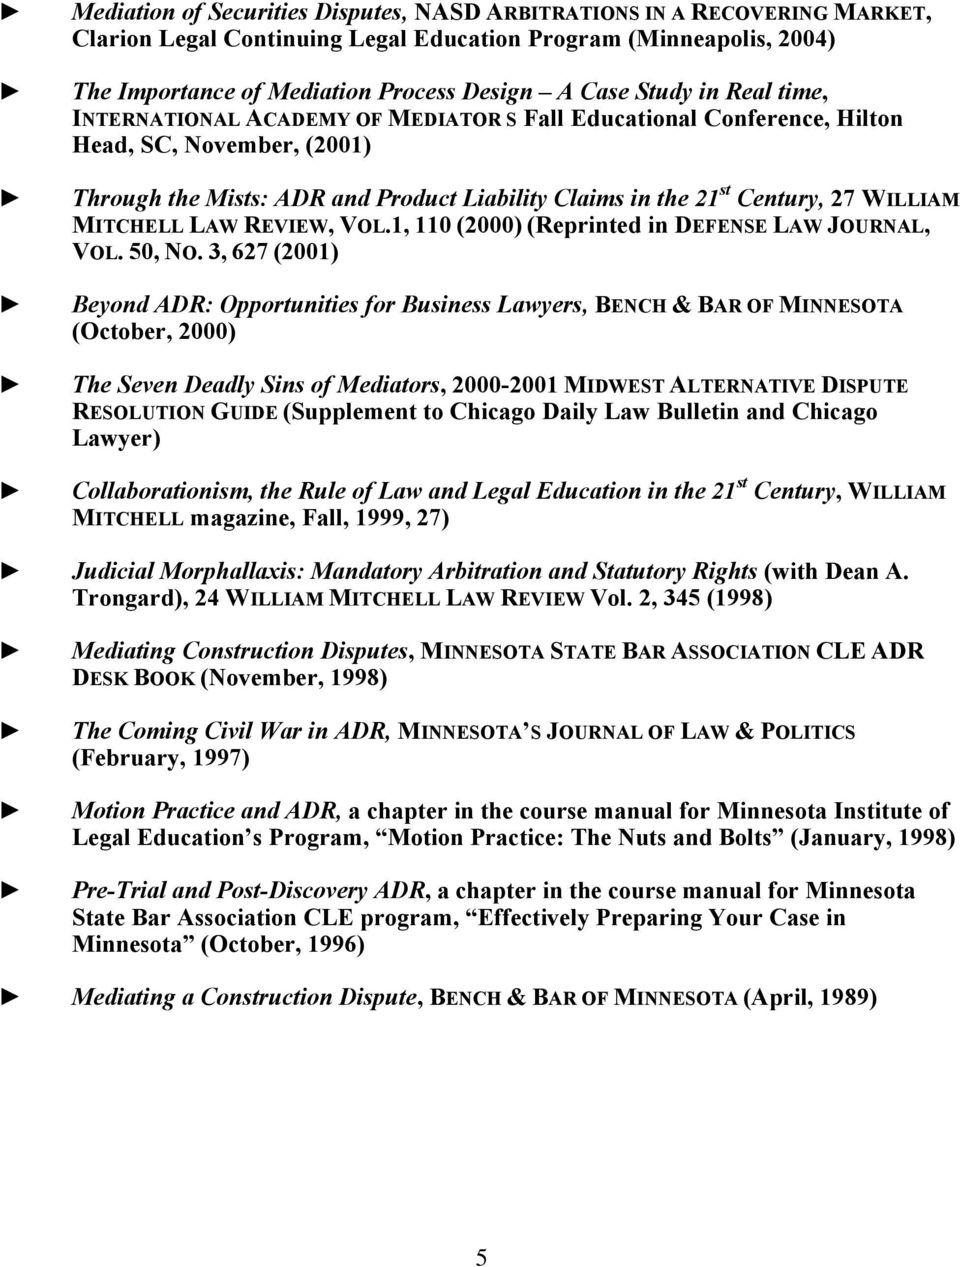 WILLIAM MITCHELL LAW REVIEW, VOL.1, 110 (2000) (Reprinted in DEFENSE LAW JOURNAL, VOL. 50, NO.